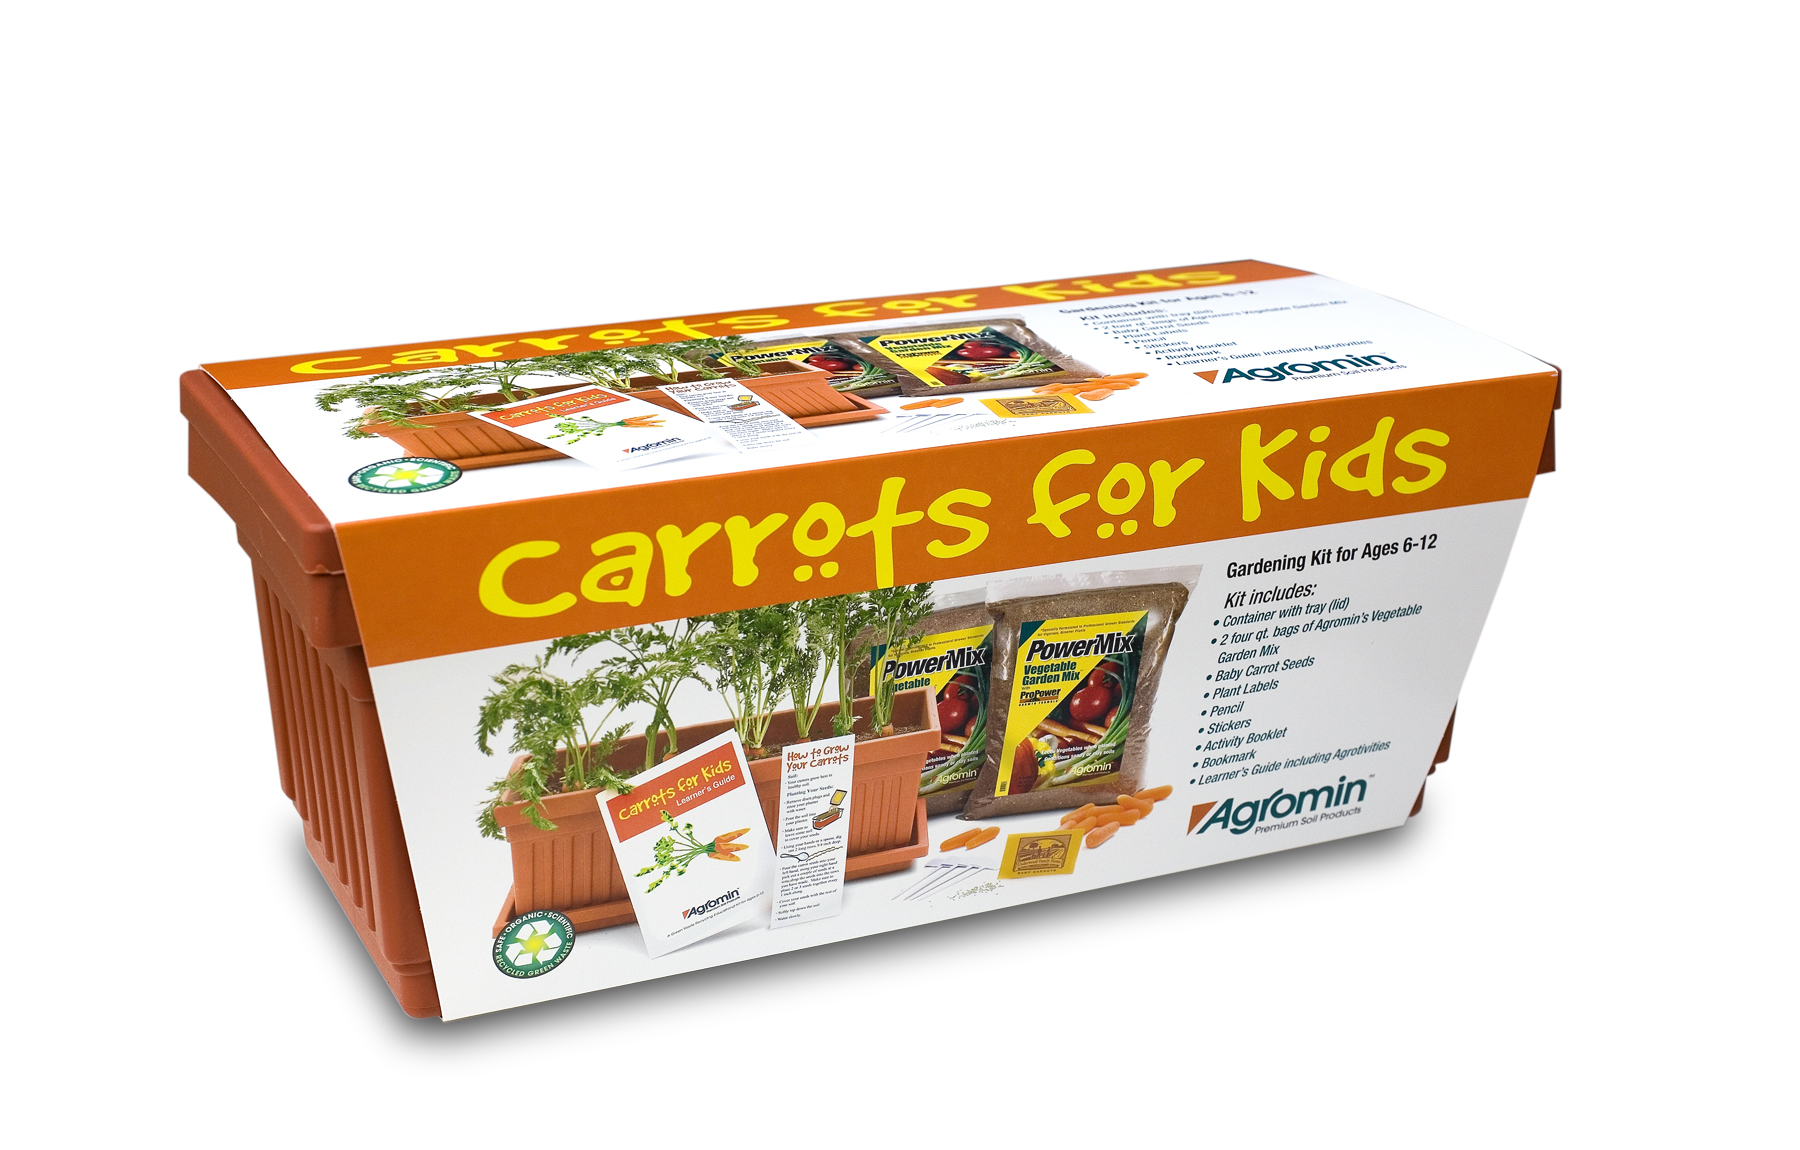 Agromin donates 300 carrots for kids gardening kits to for Gardening kit for toddlers